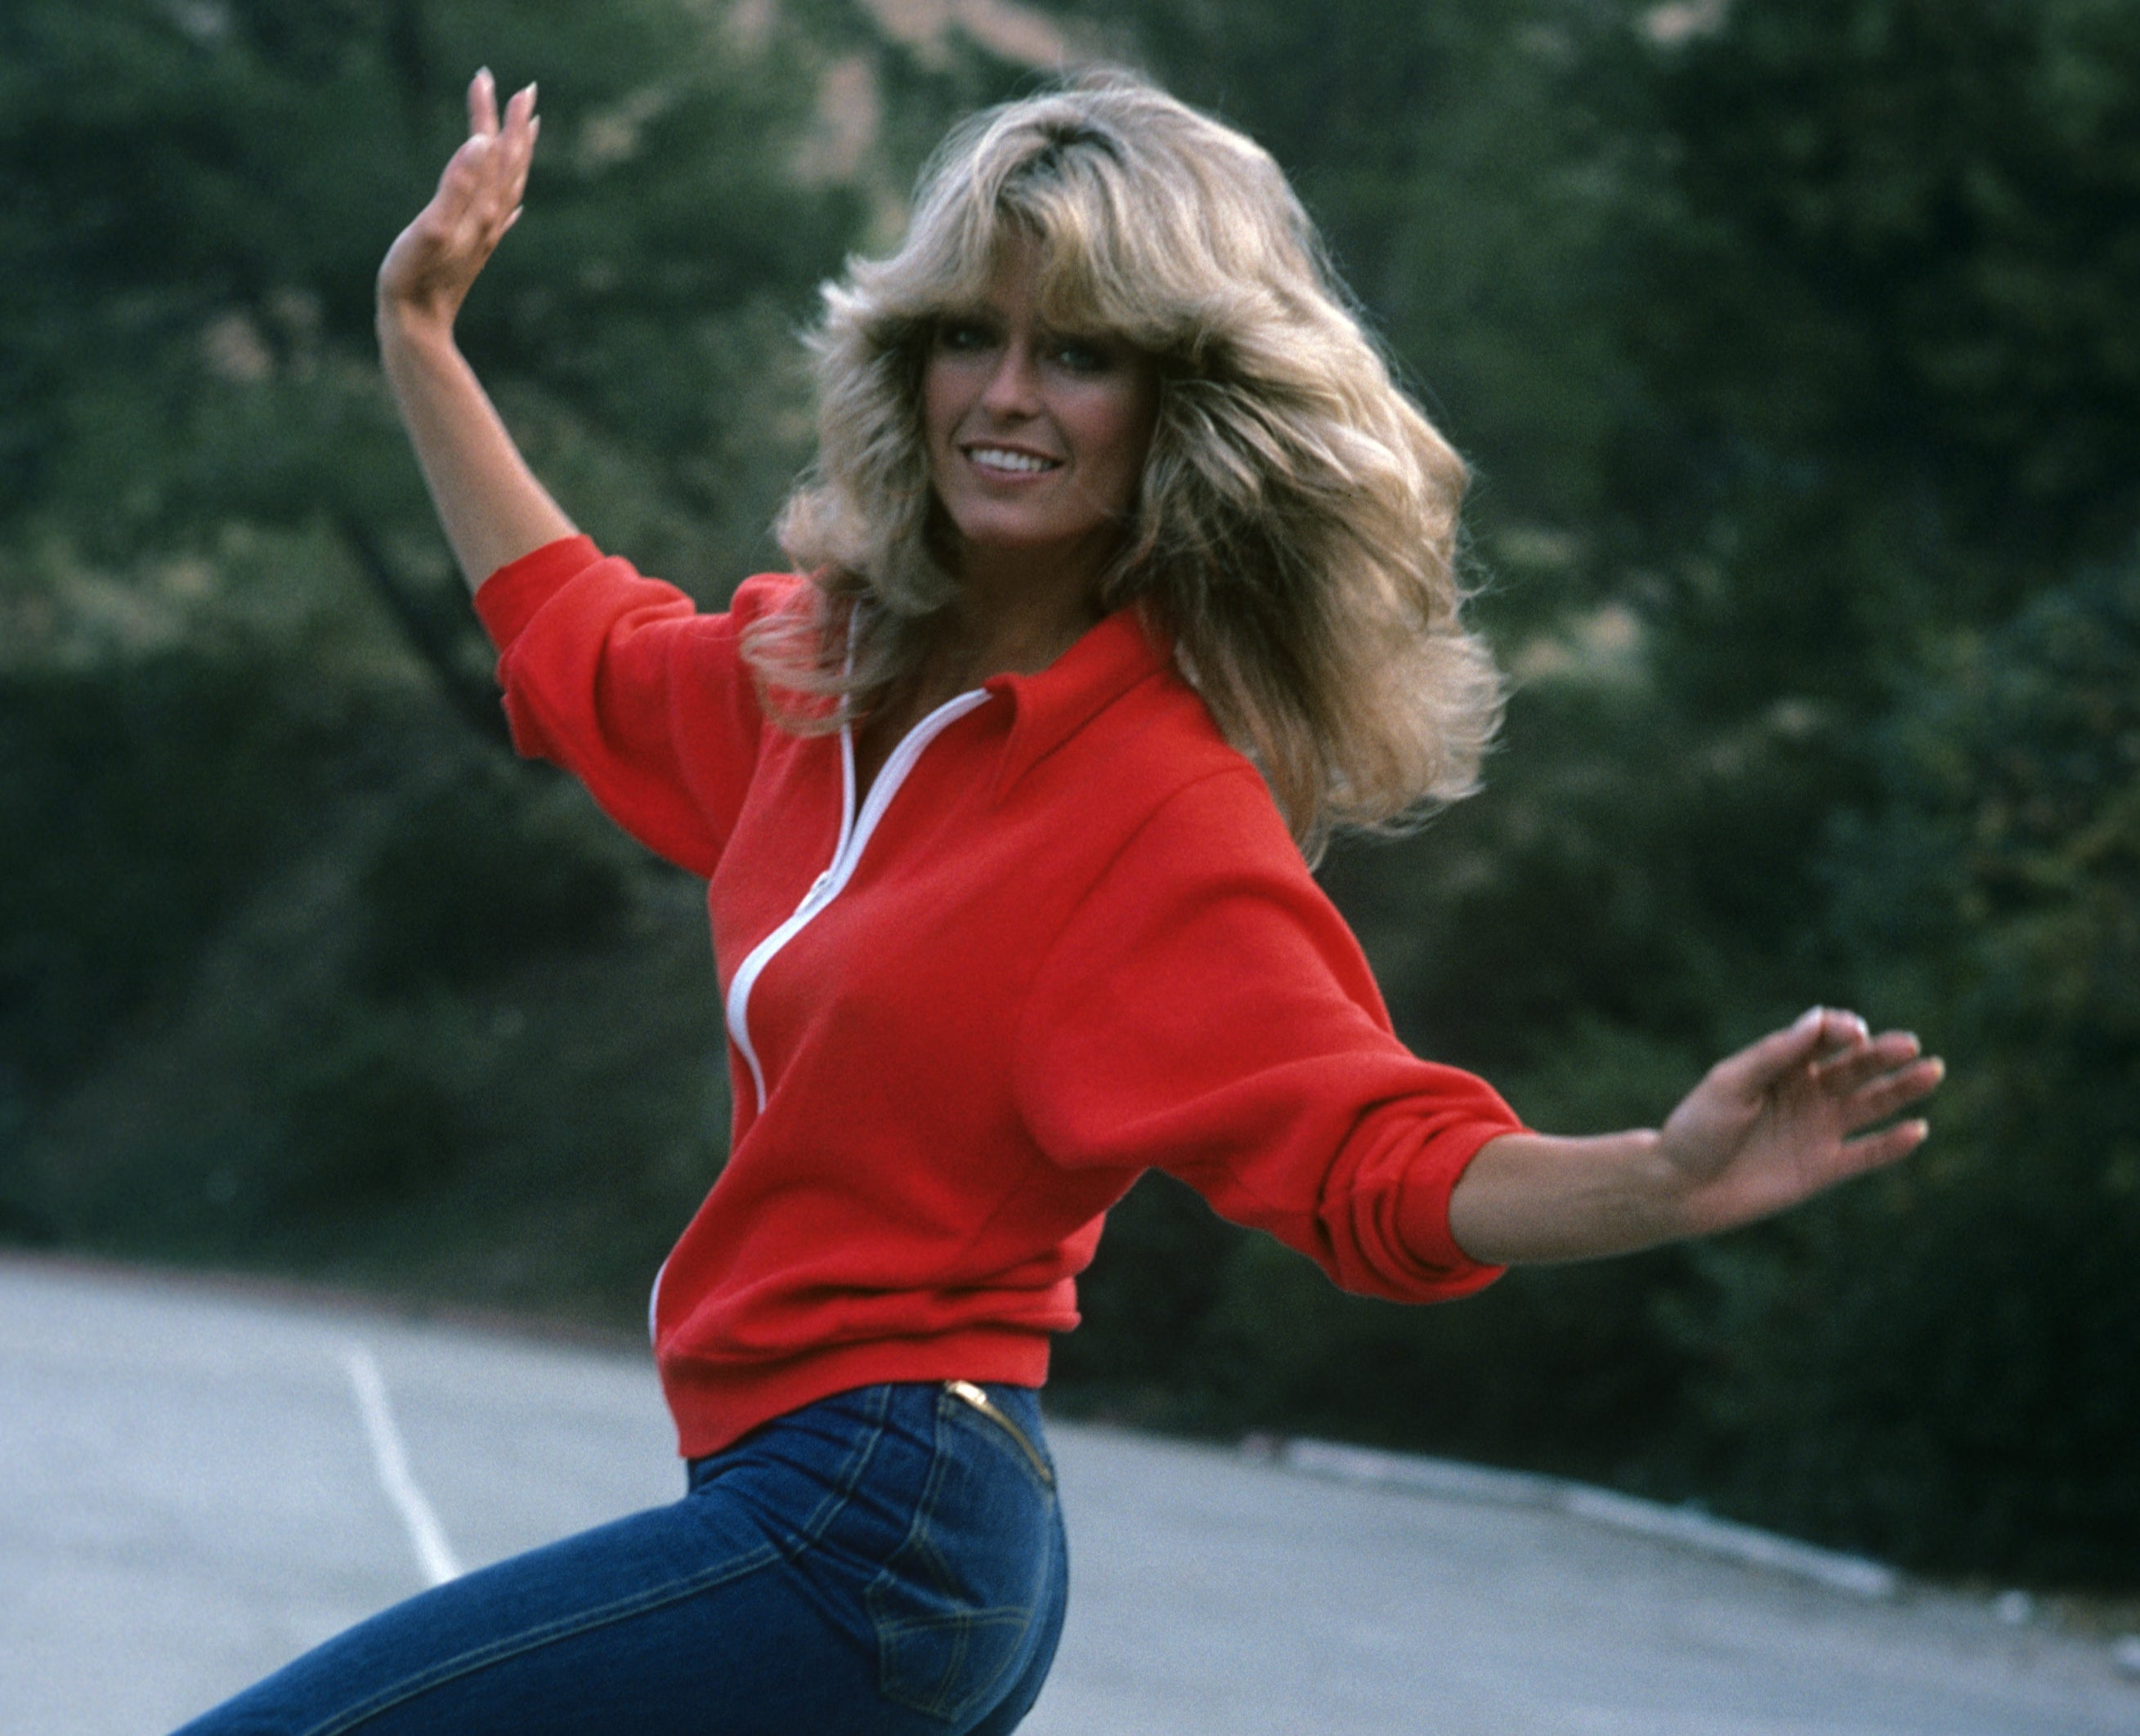 A young Farrah smiles while holding her hands out and wearing a red sweatshirt